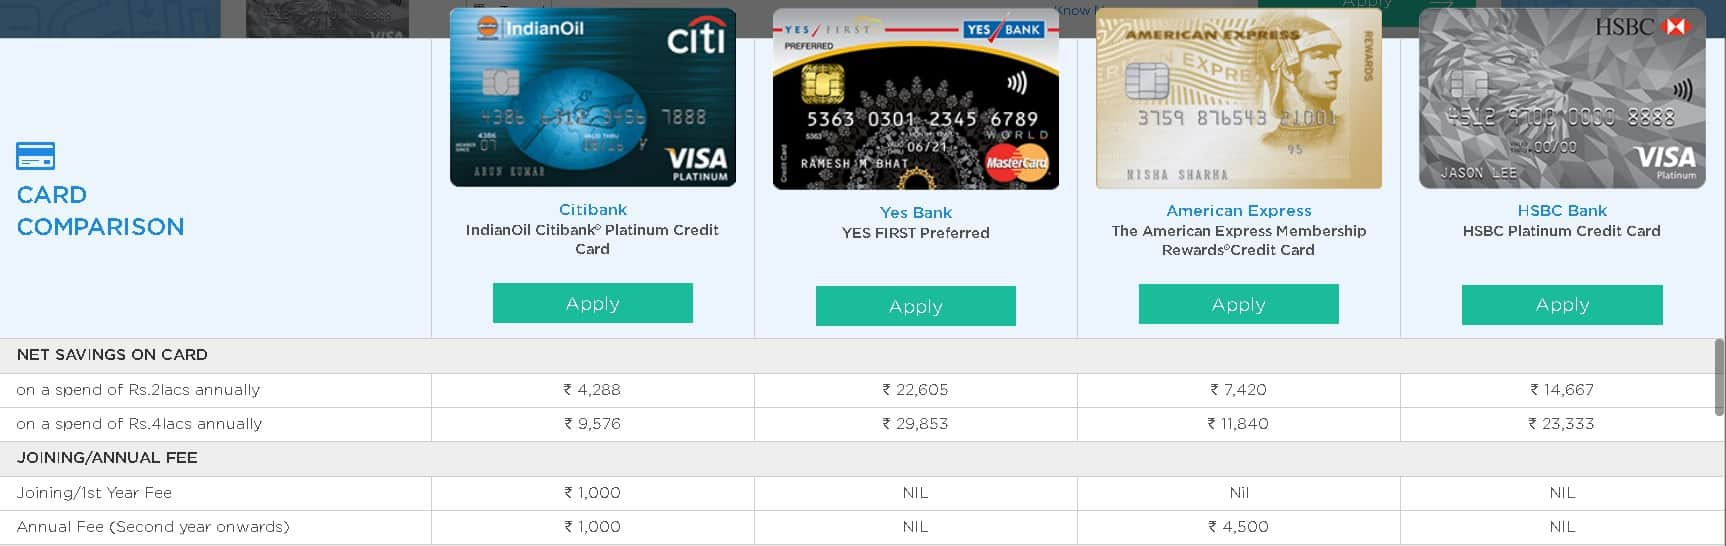 Credit Card Selection In India: card comparison chart part 1 showing fees